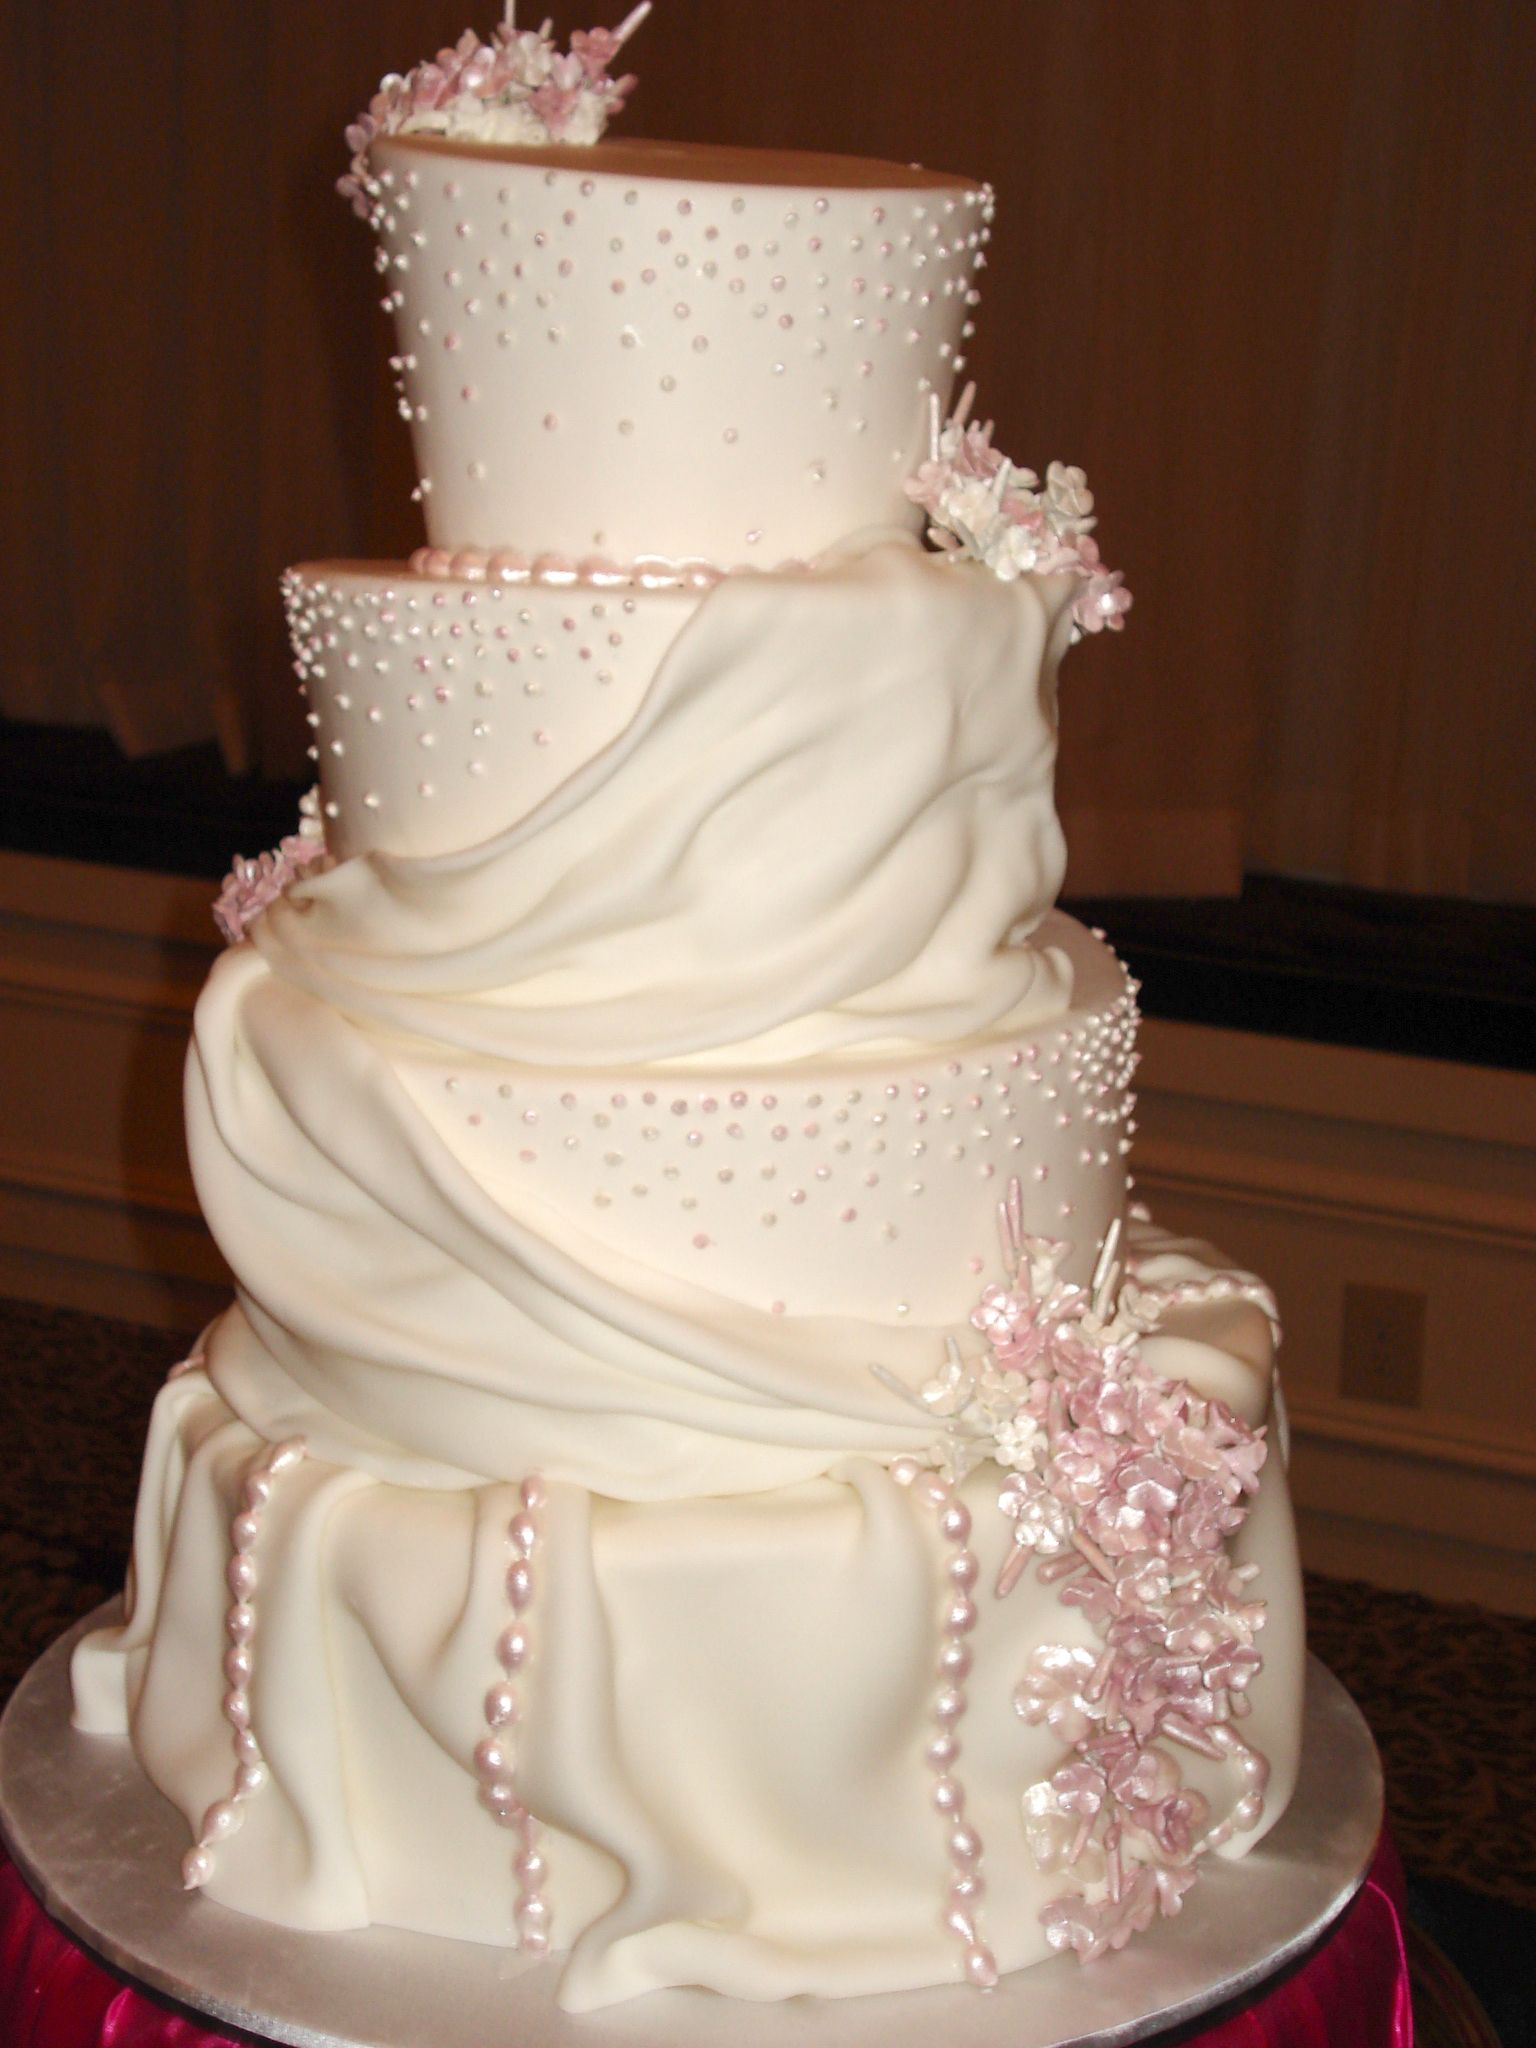 The Most Expensive Wedding Cake In The World Imgkid.com